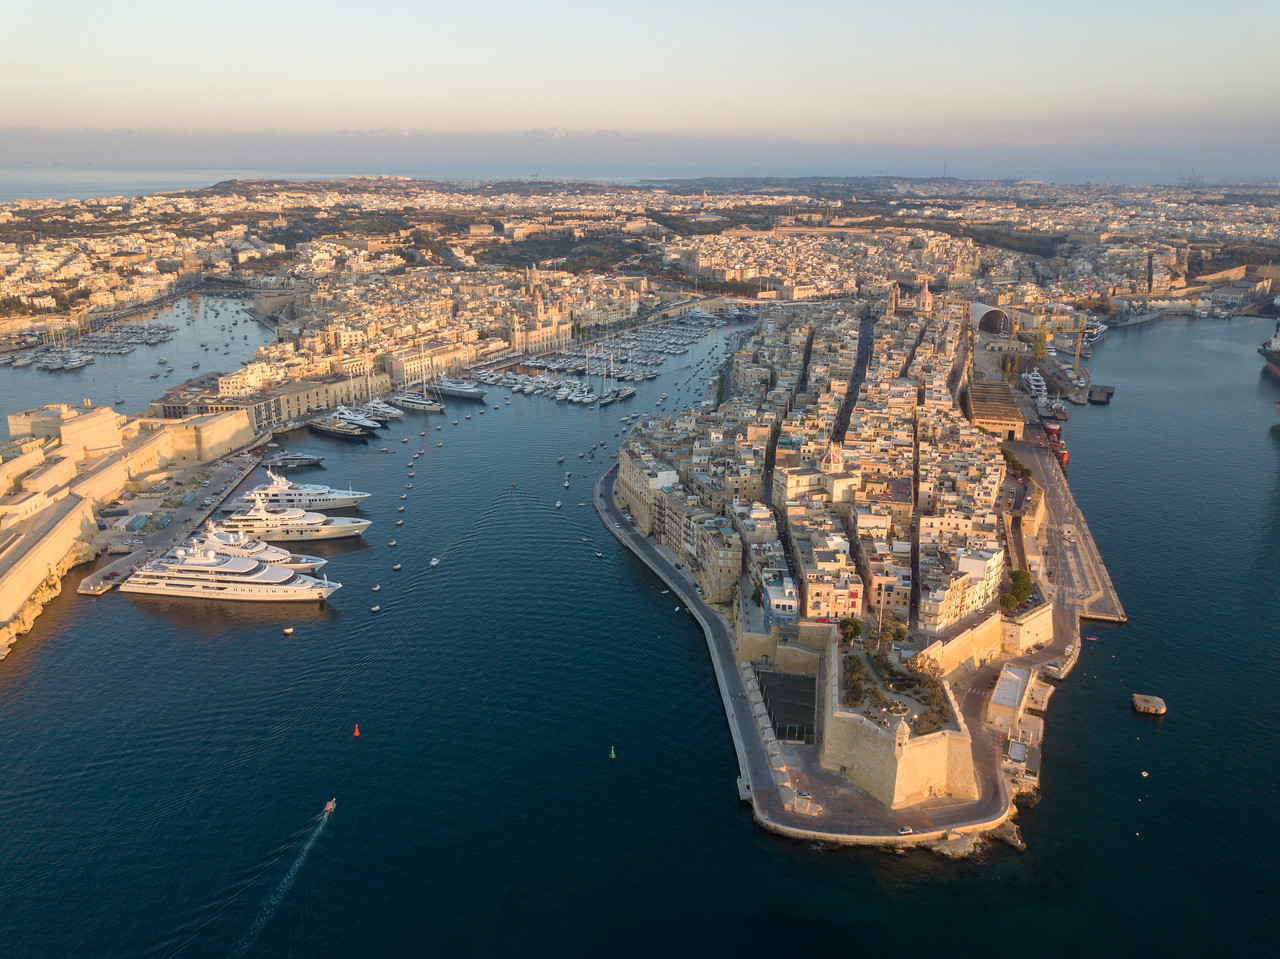 Drone Photograph of Senglea And The Three Cities